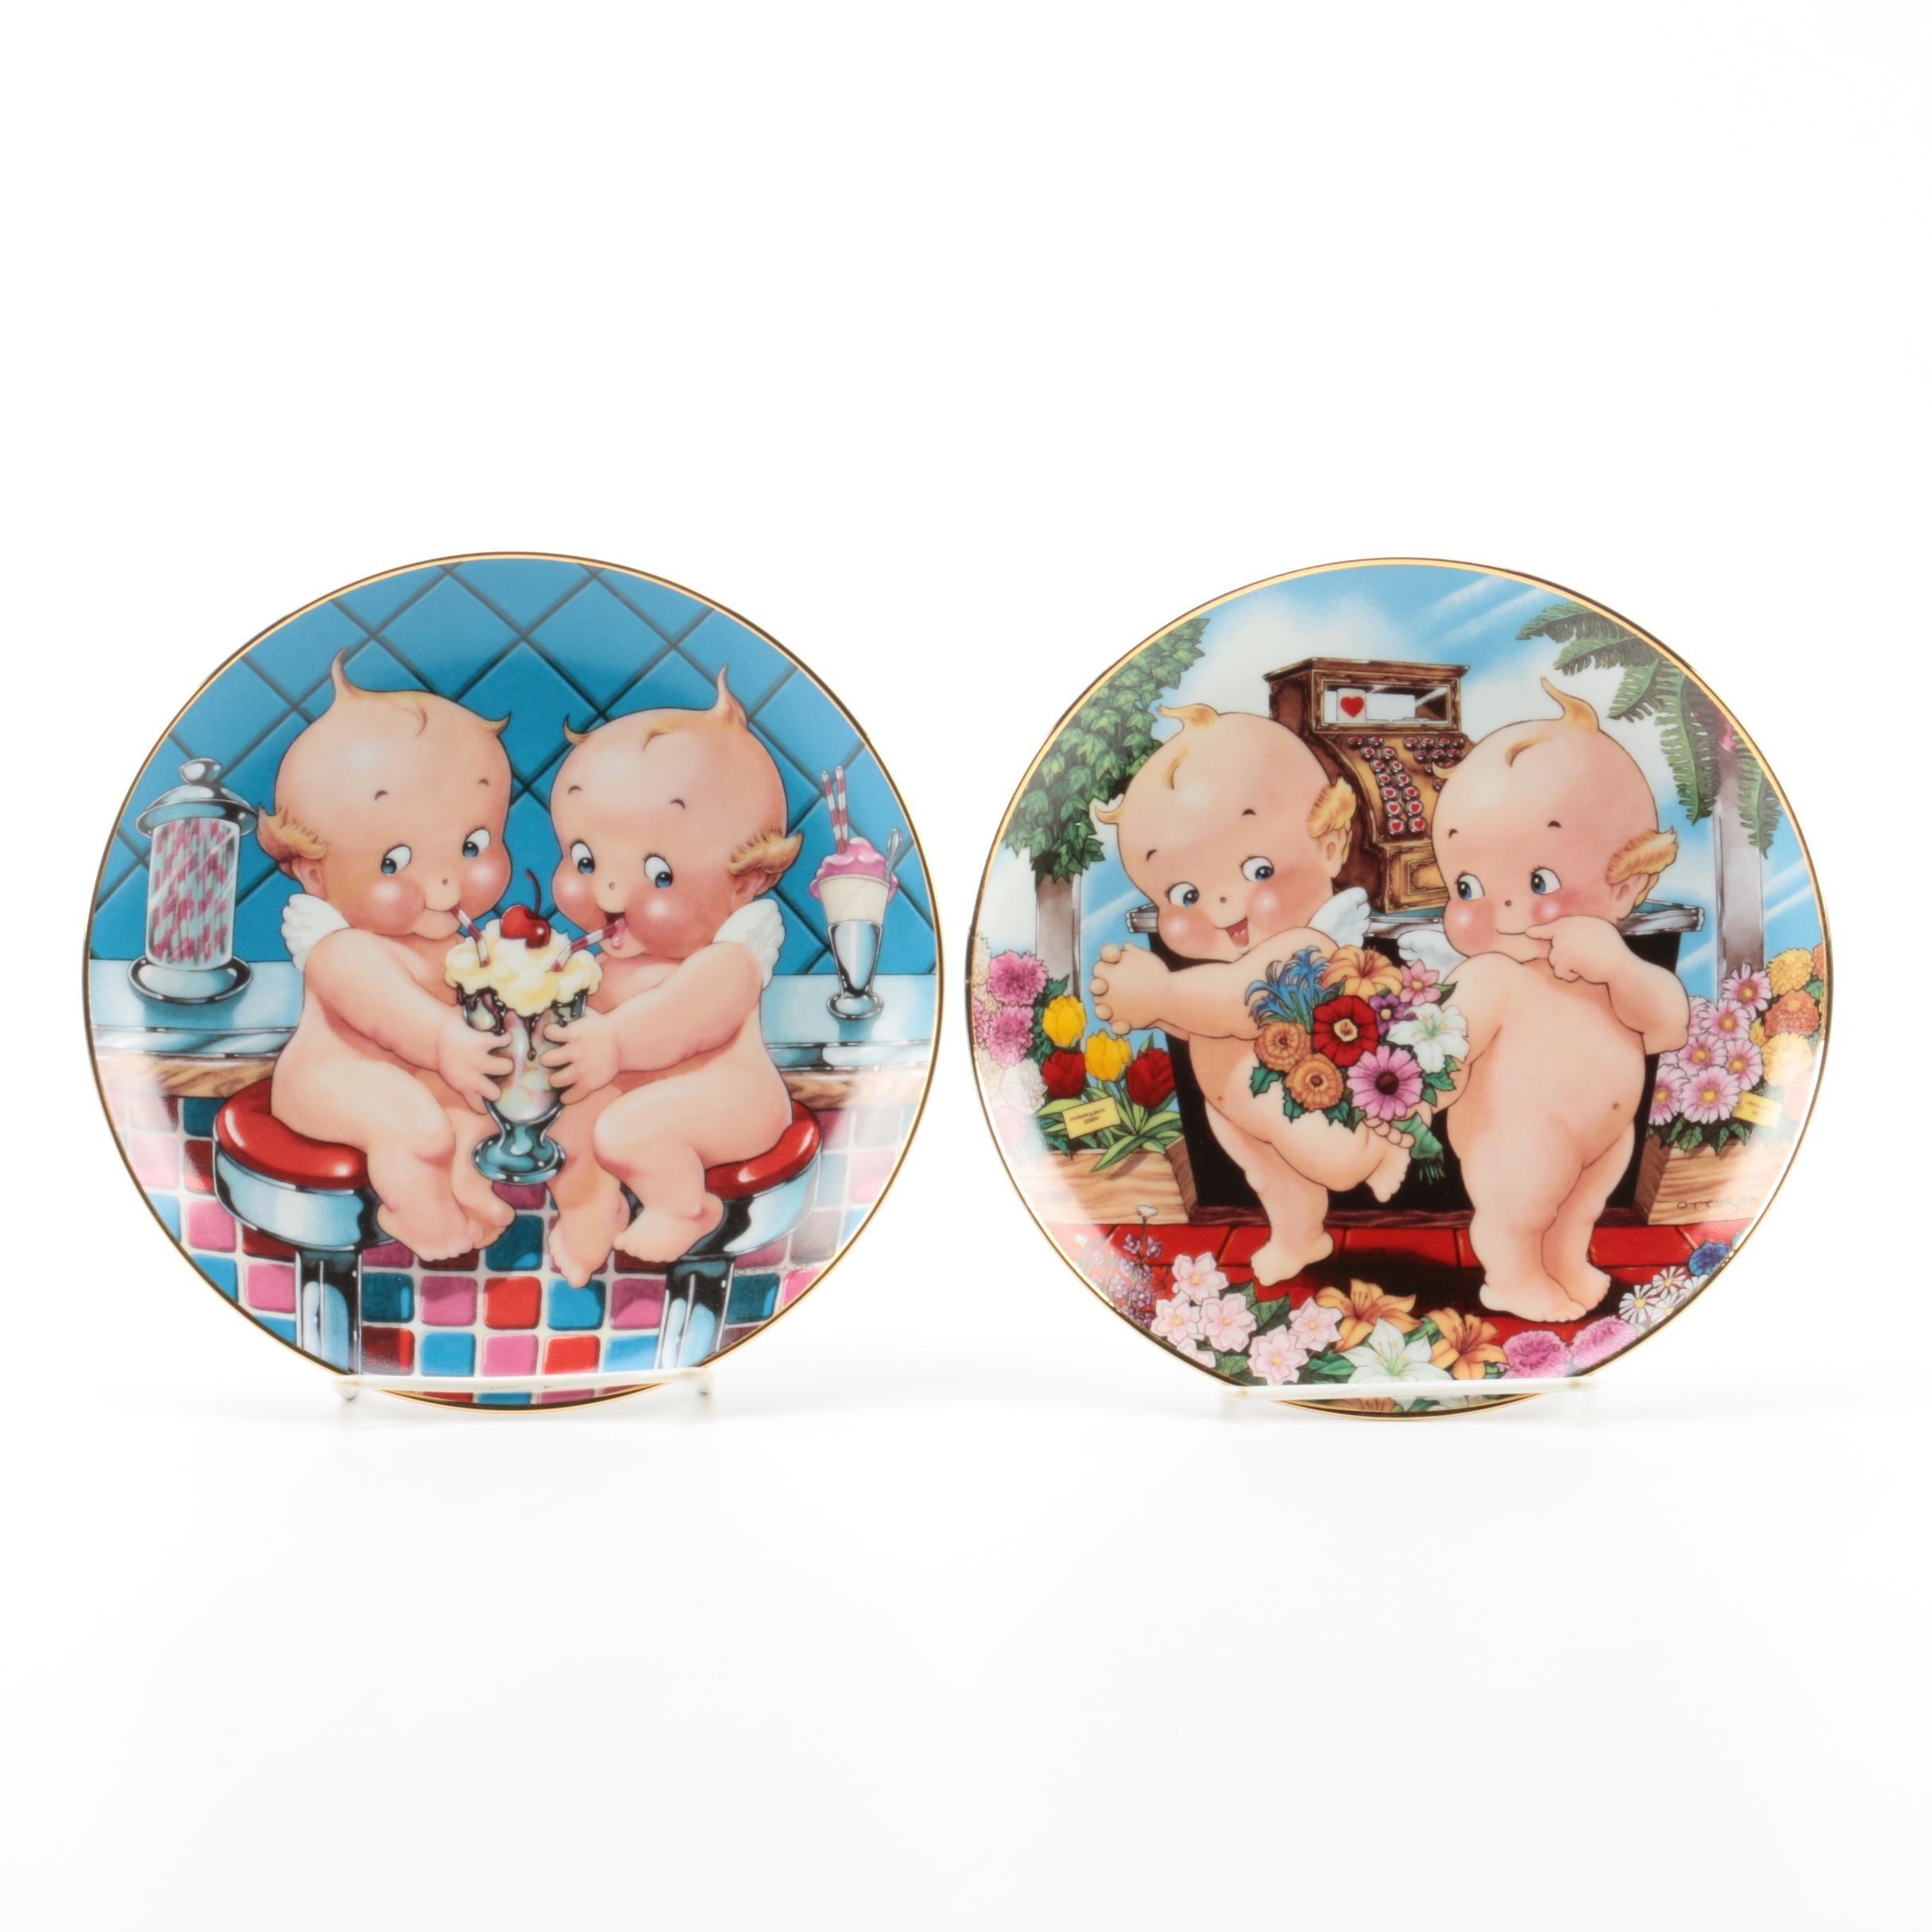 Limited Edition The Danbury Mint Kewpie Doll Themed Collector Plates